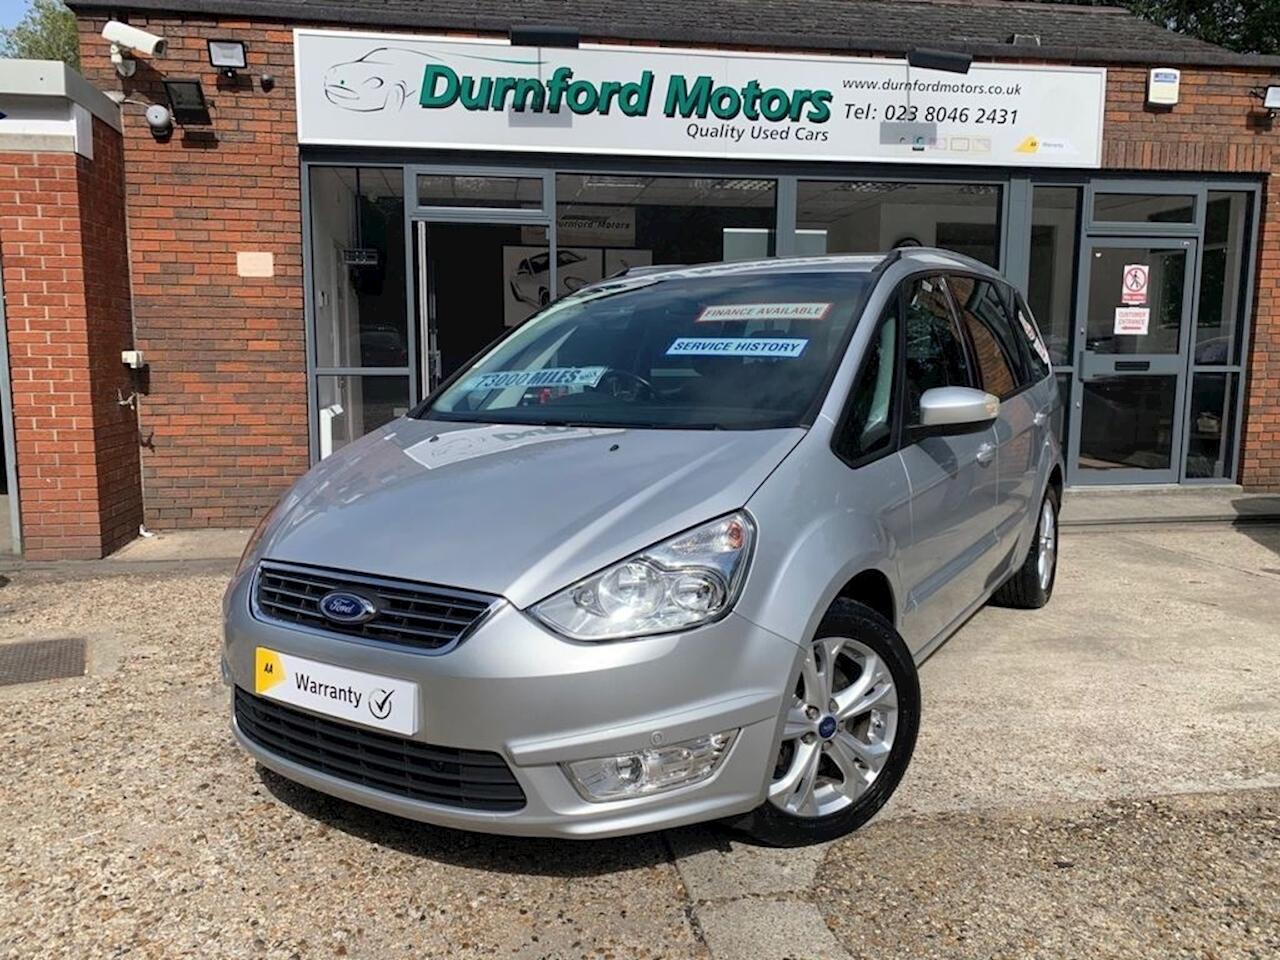 Ford Galaxy Zetec Tdci Mpv 2.0 Manual Diesel